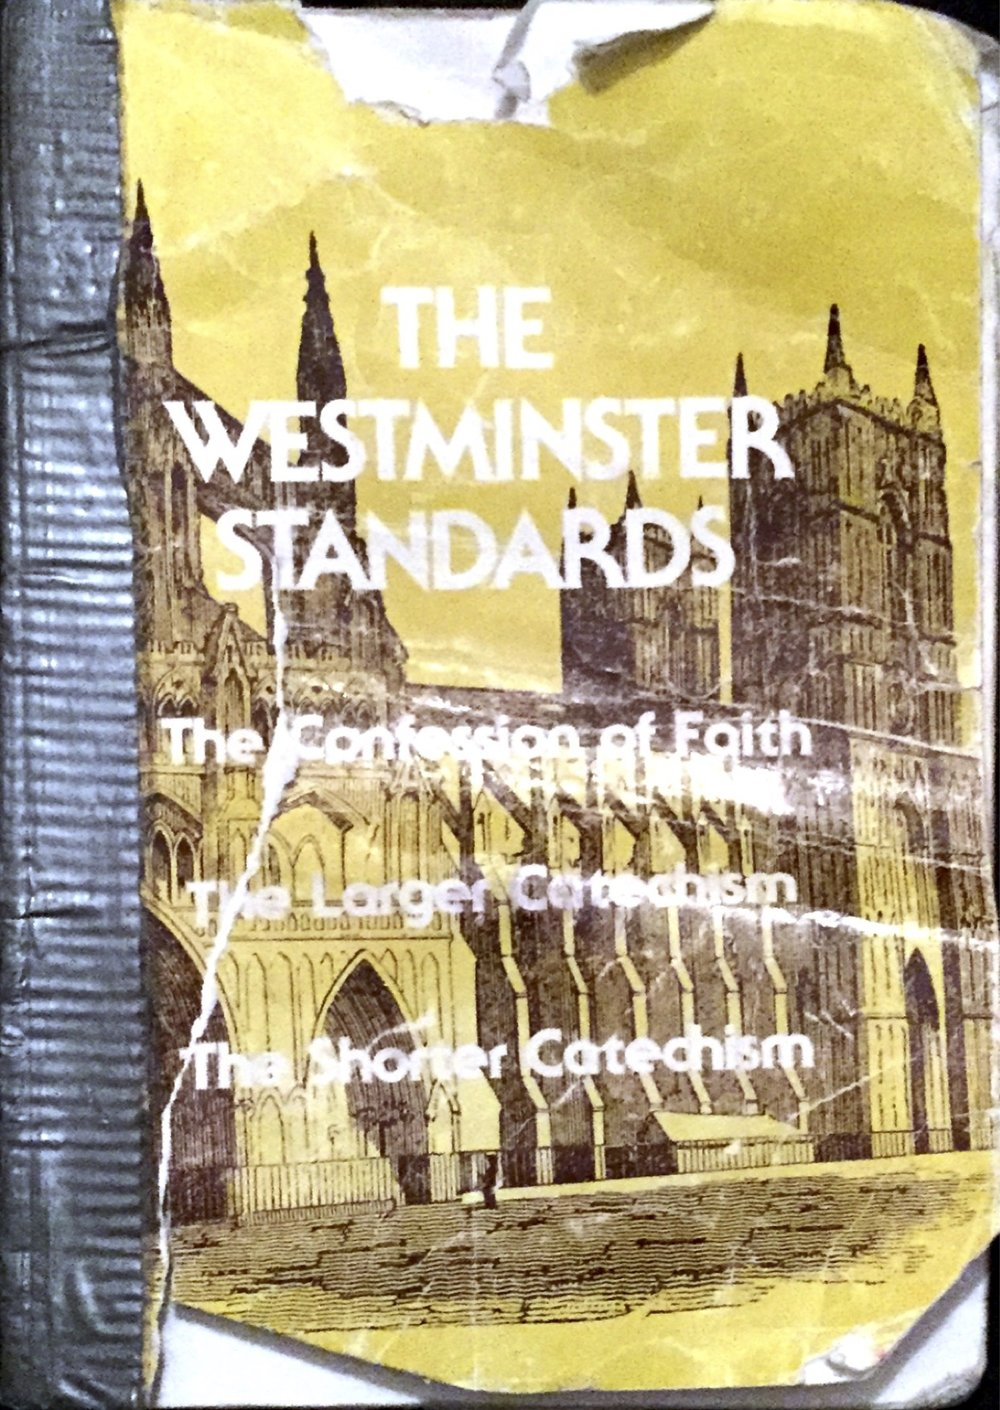 Westminster Standards - Aaron's Copy.jpg